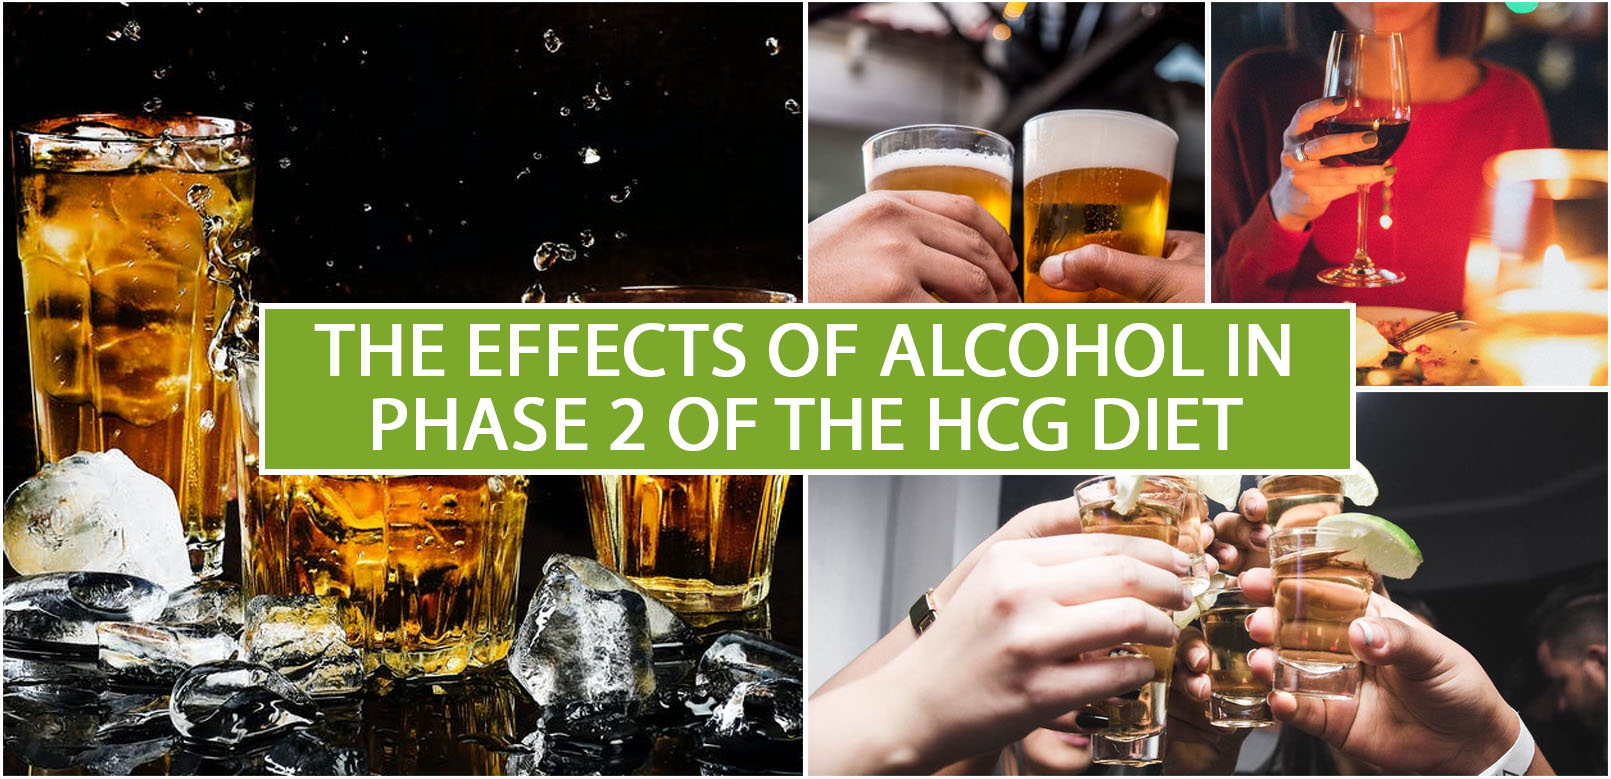 THE EFFECTS OF ALCOHOL IN PHASE 2 OF THE HCG DIET